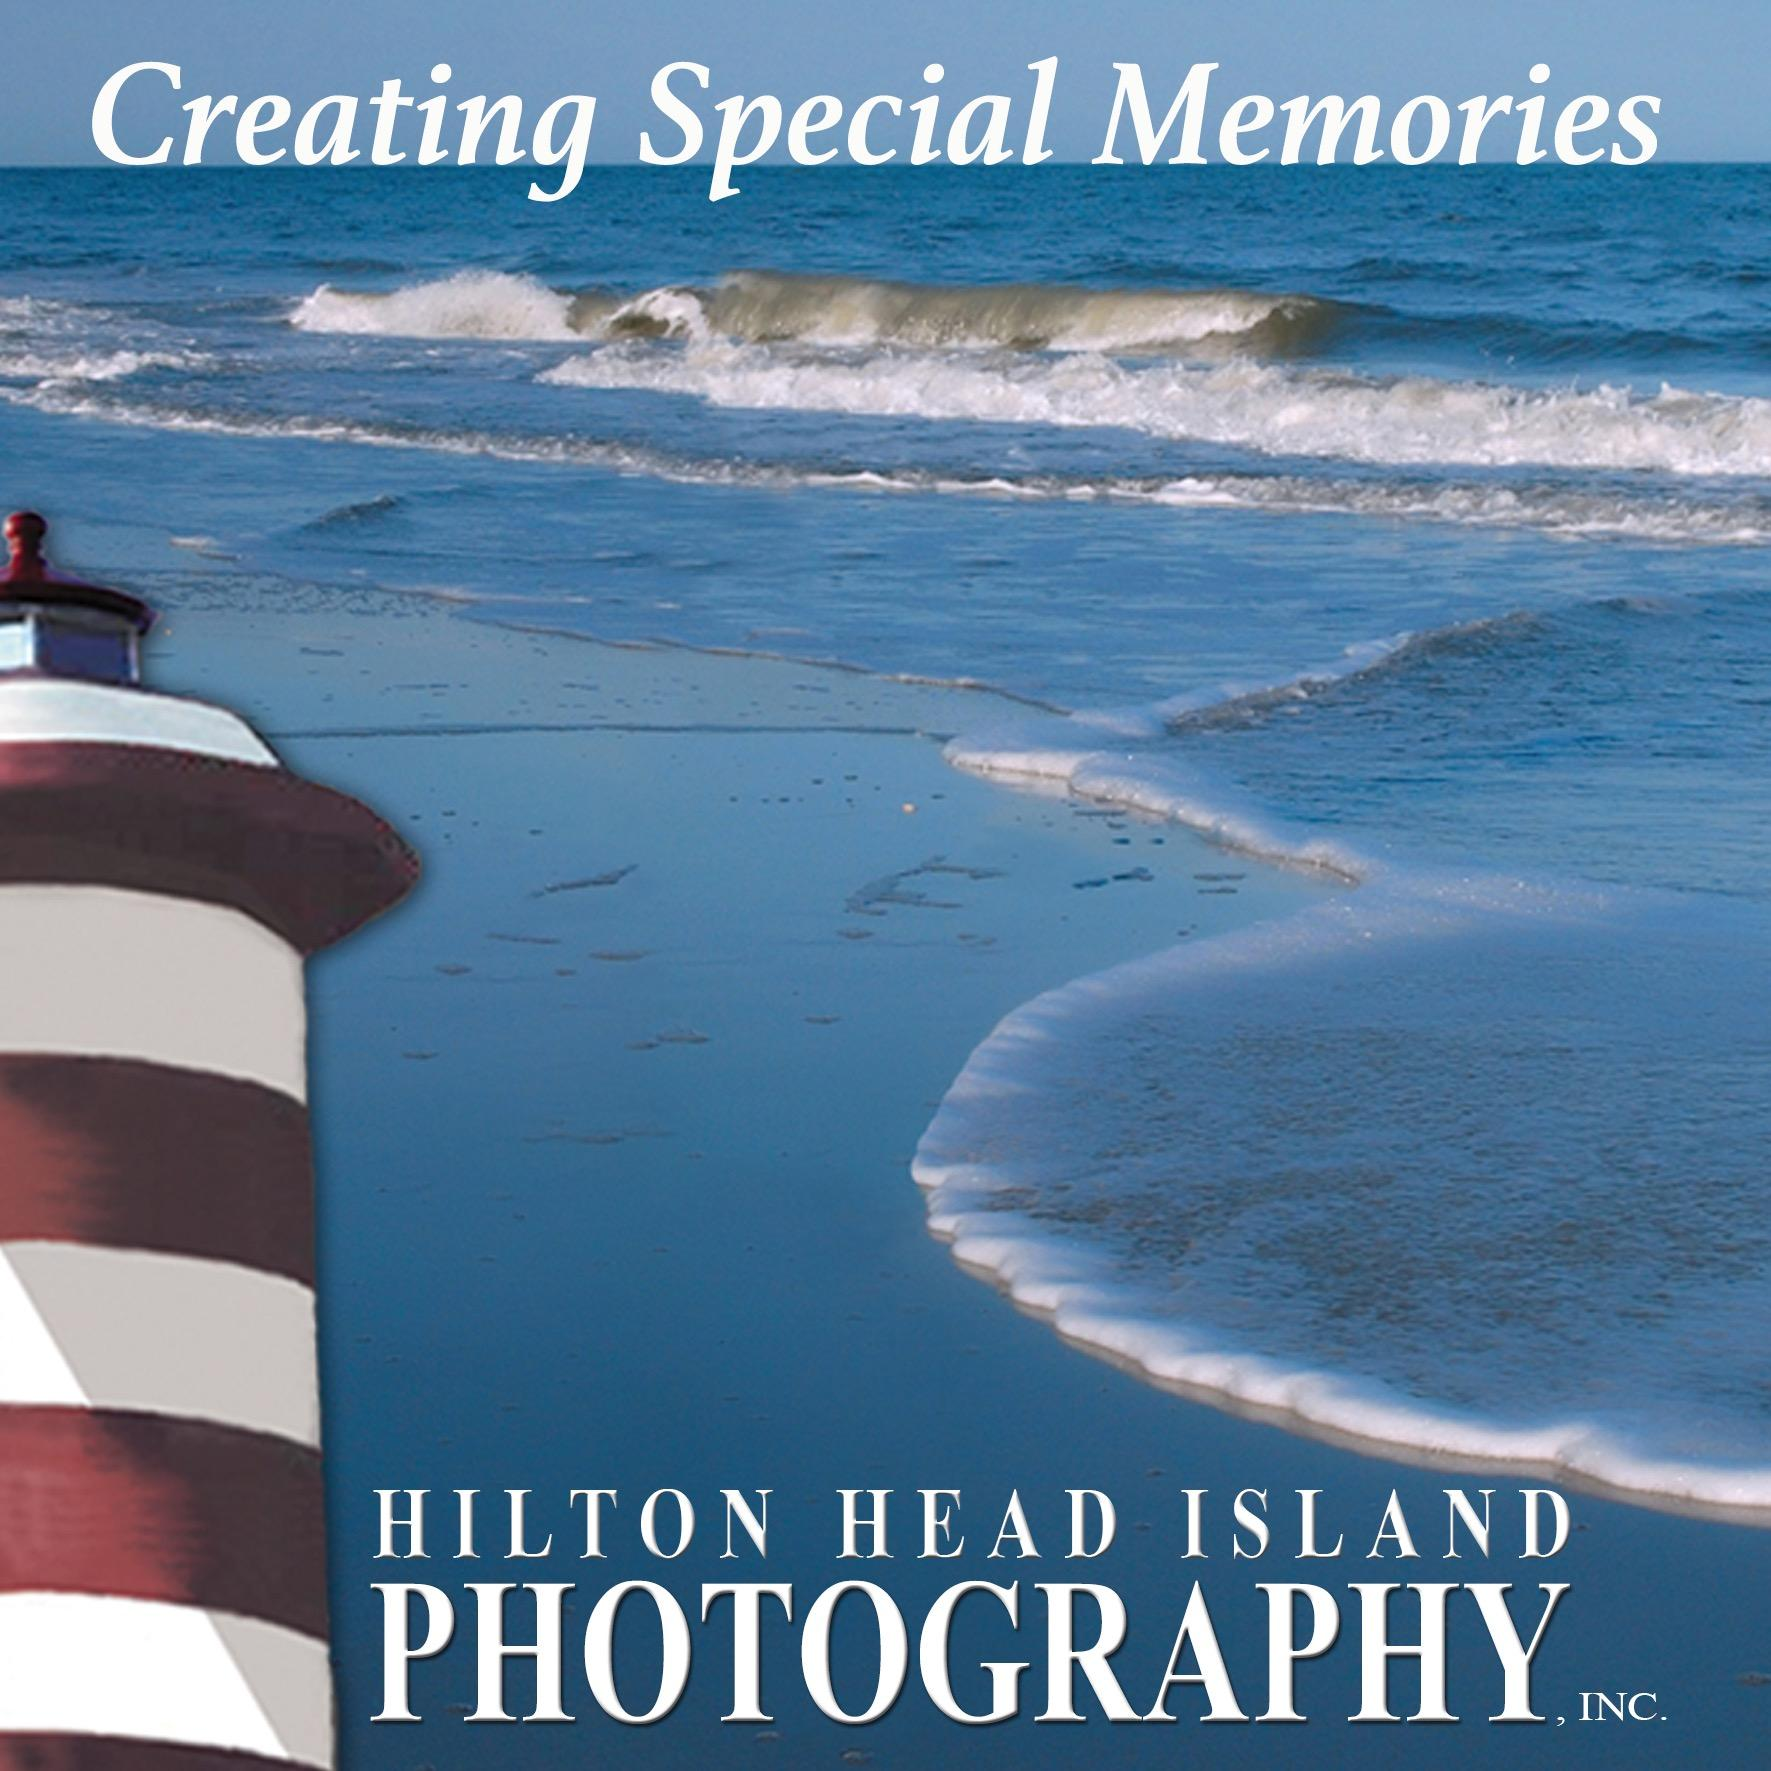 Hilton head island coupons and deals